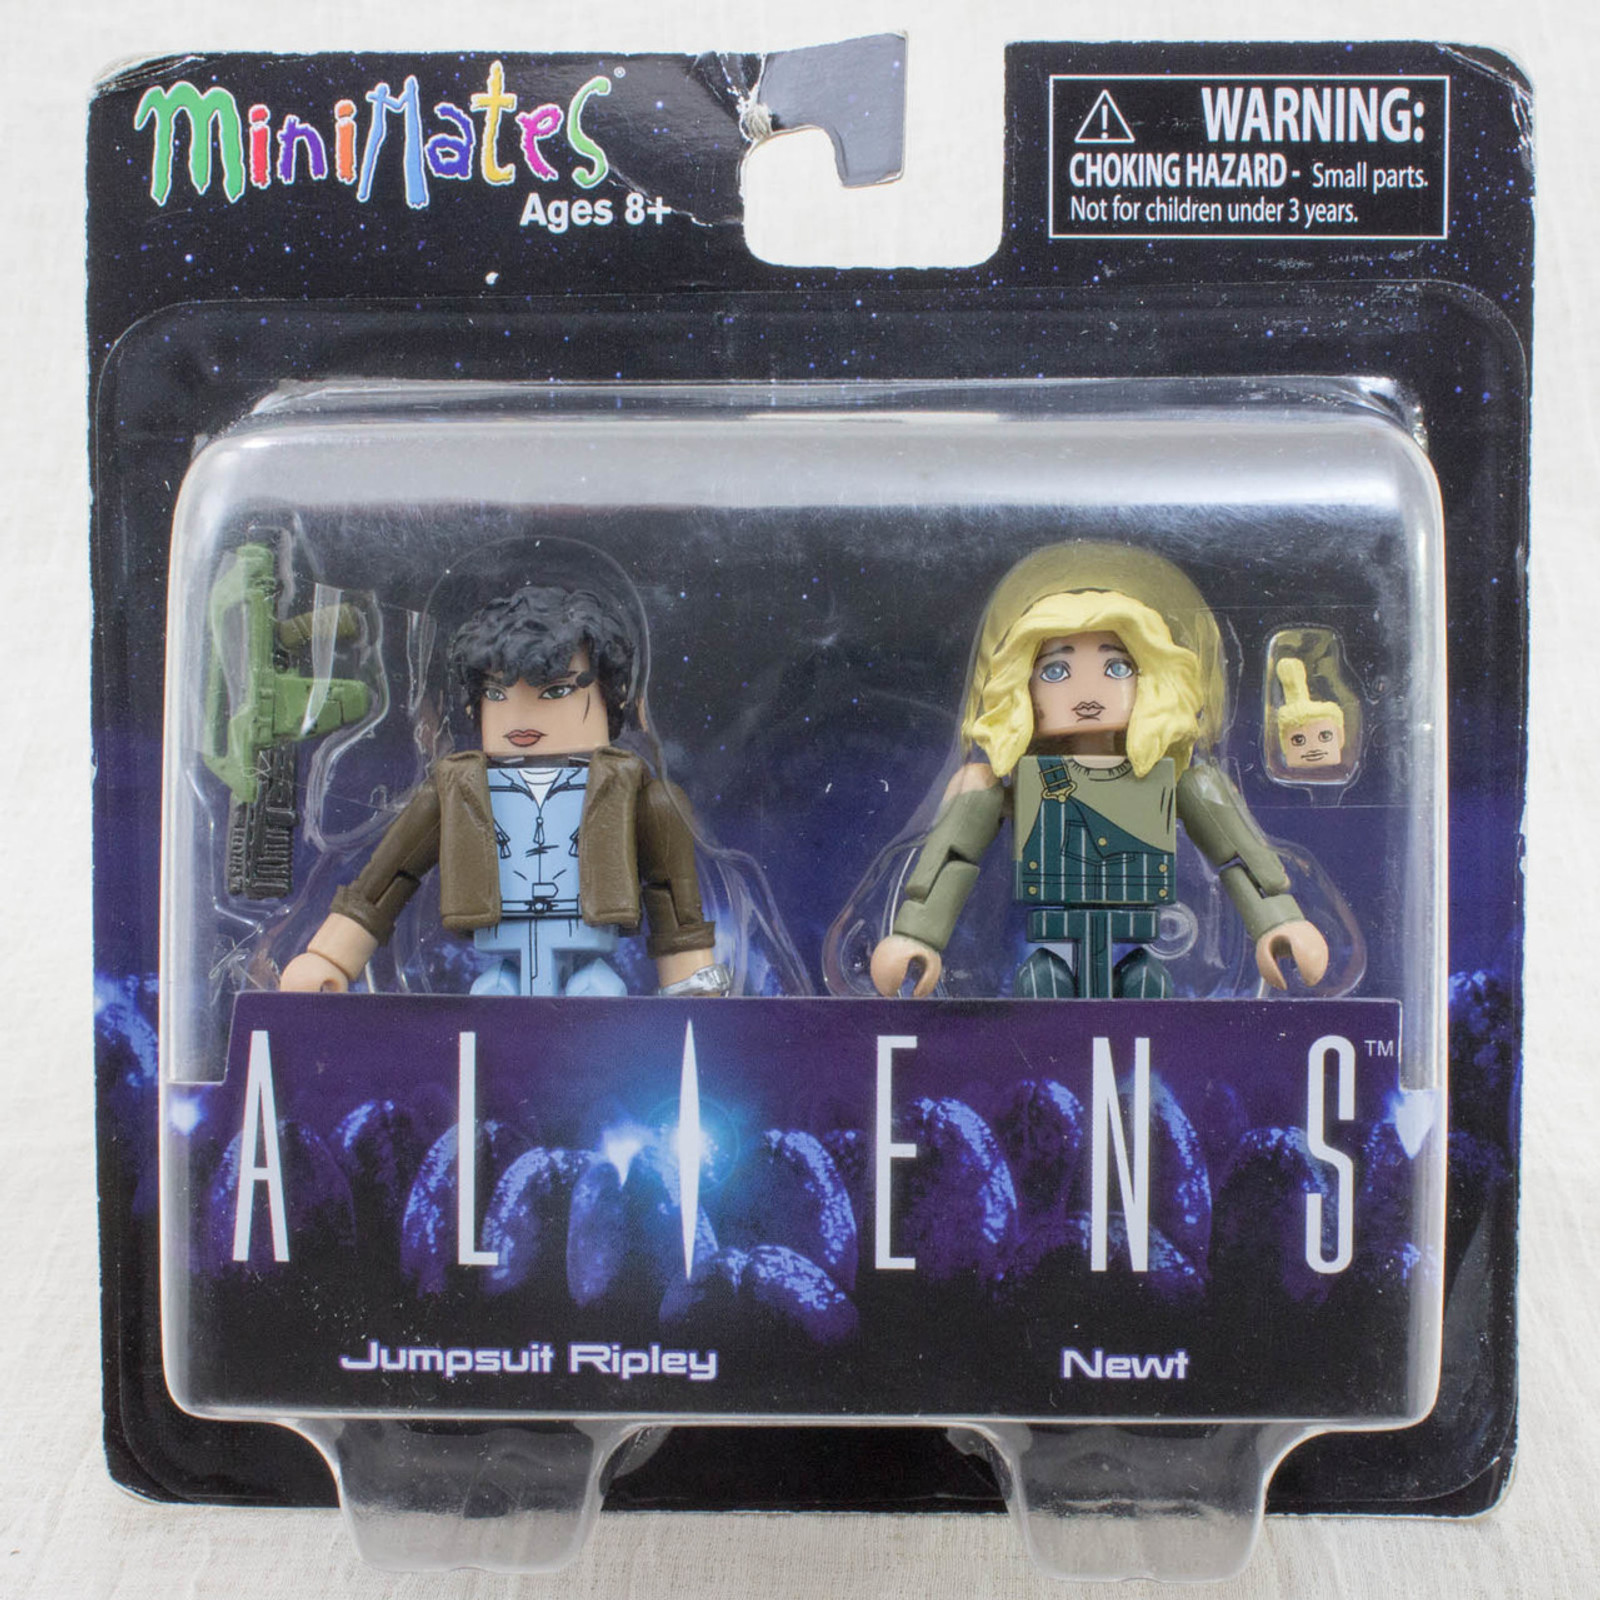 ALIENS Jumpsuit Ripley Newt 2pc Set Figure Minimates DIAMOND SELECT TOYS